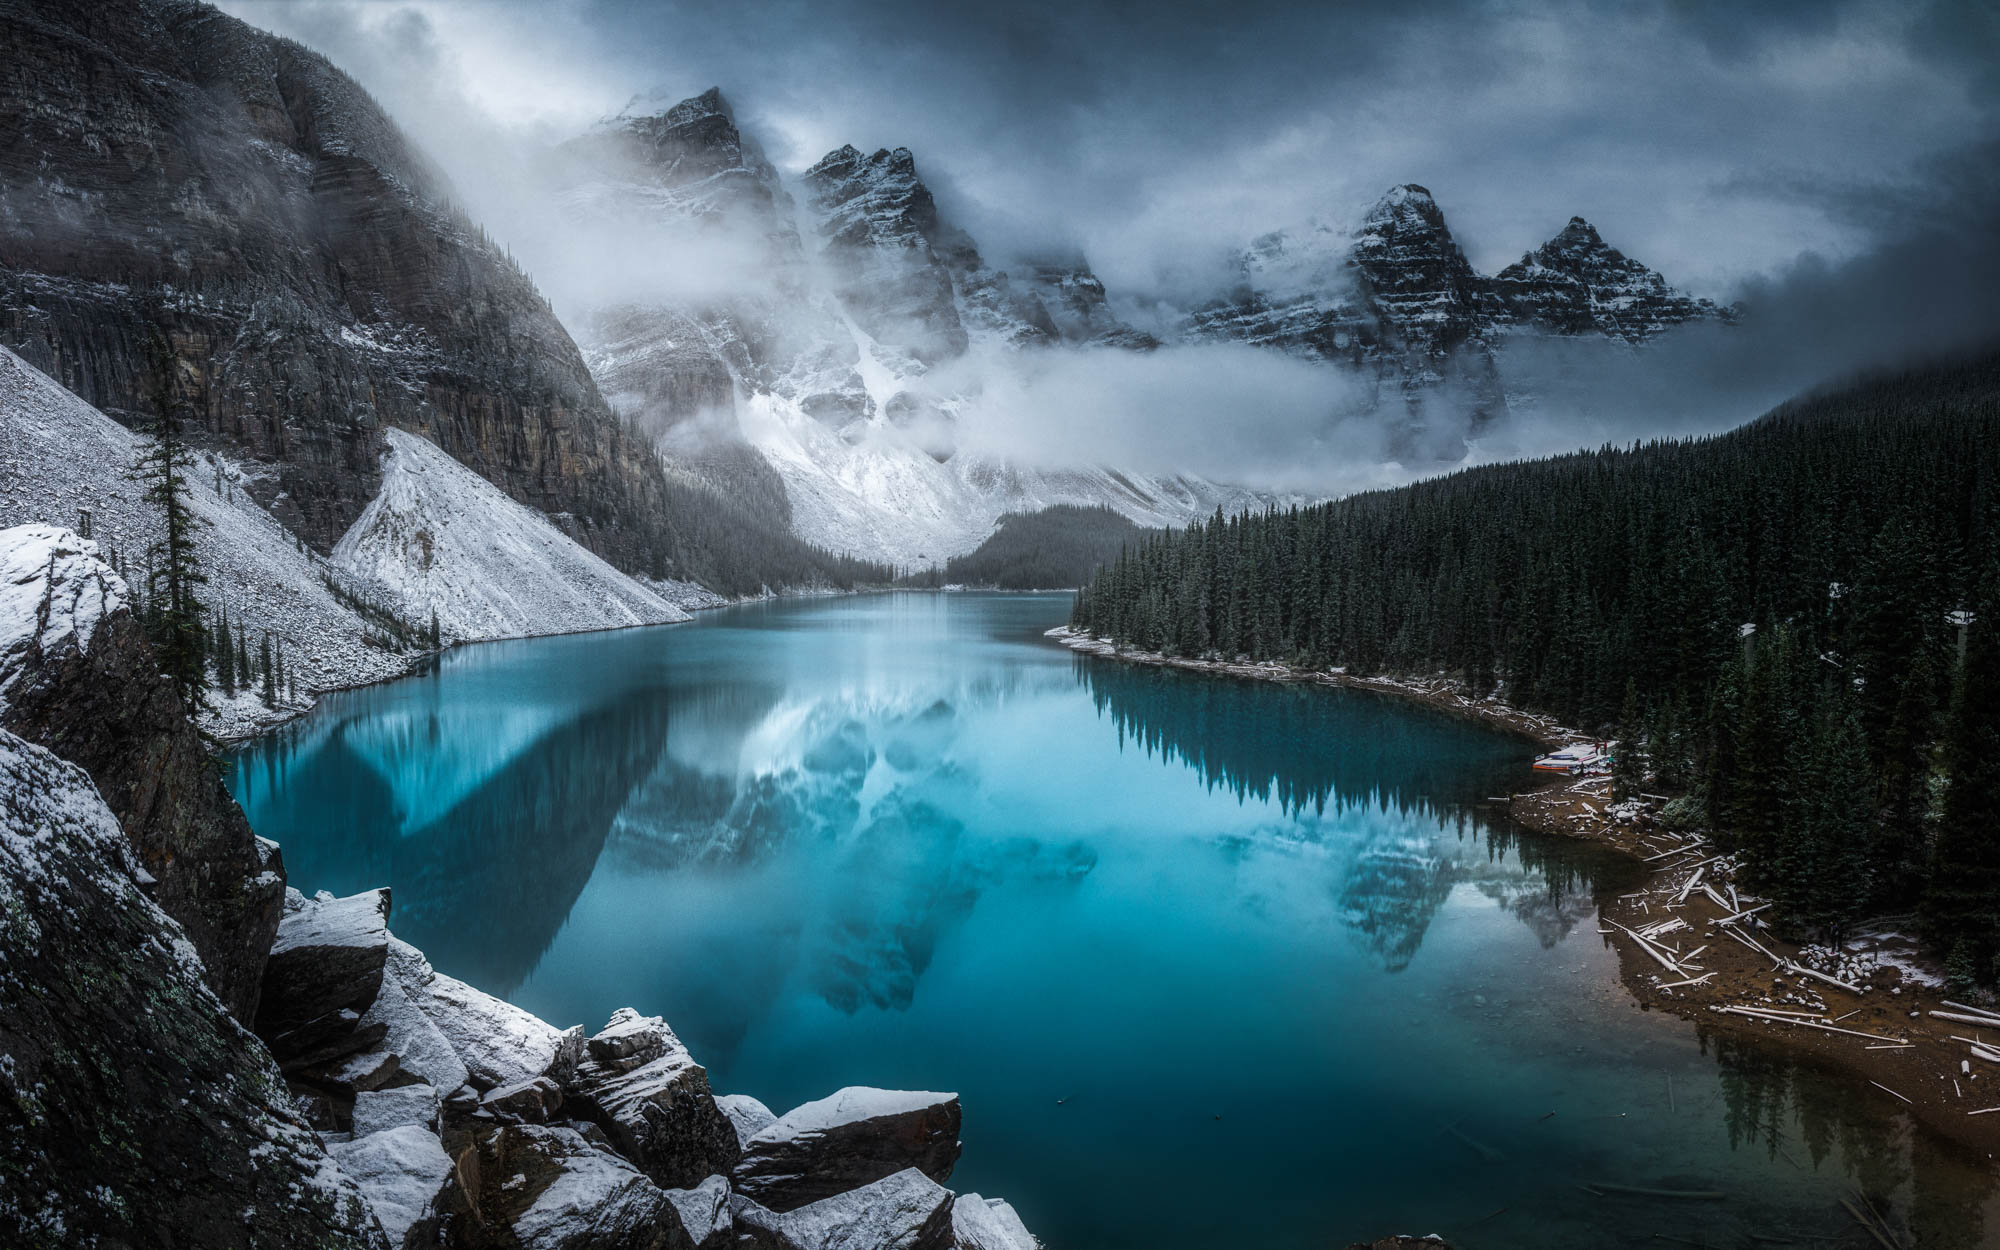 A misty day at Moraine Lake, Canada